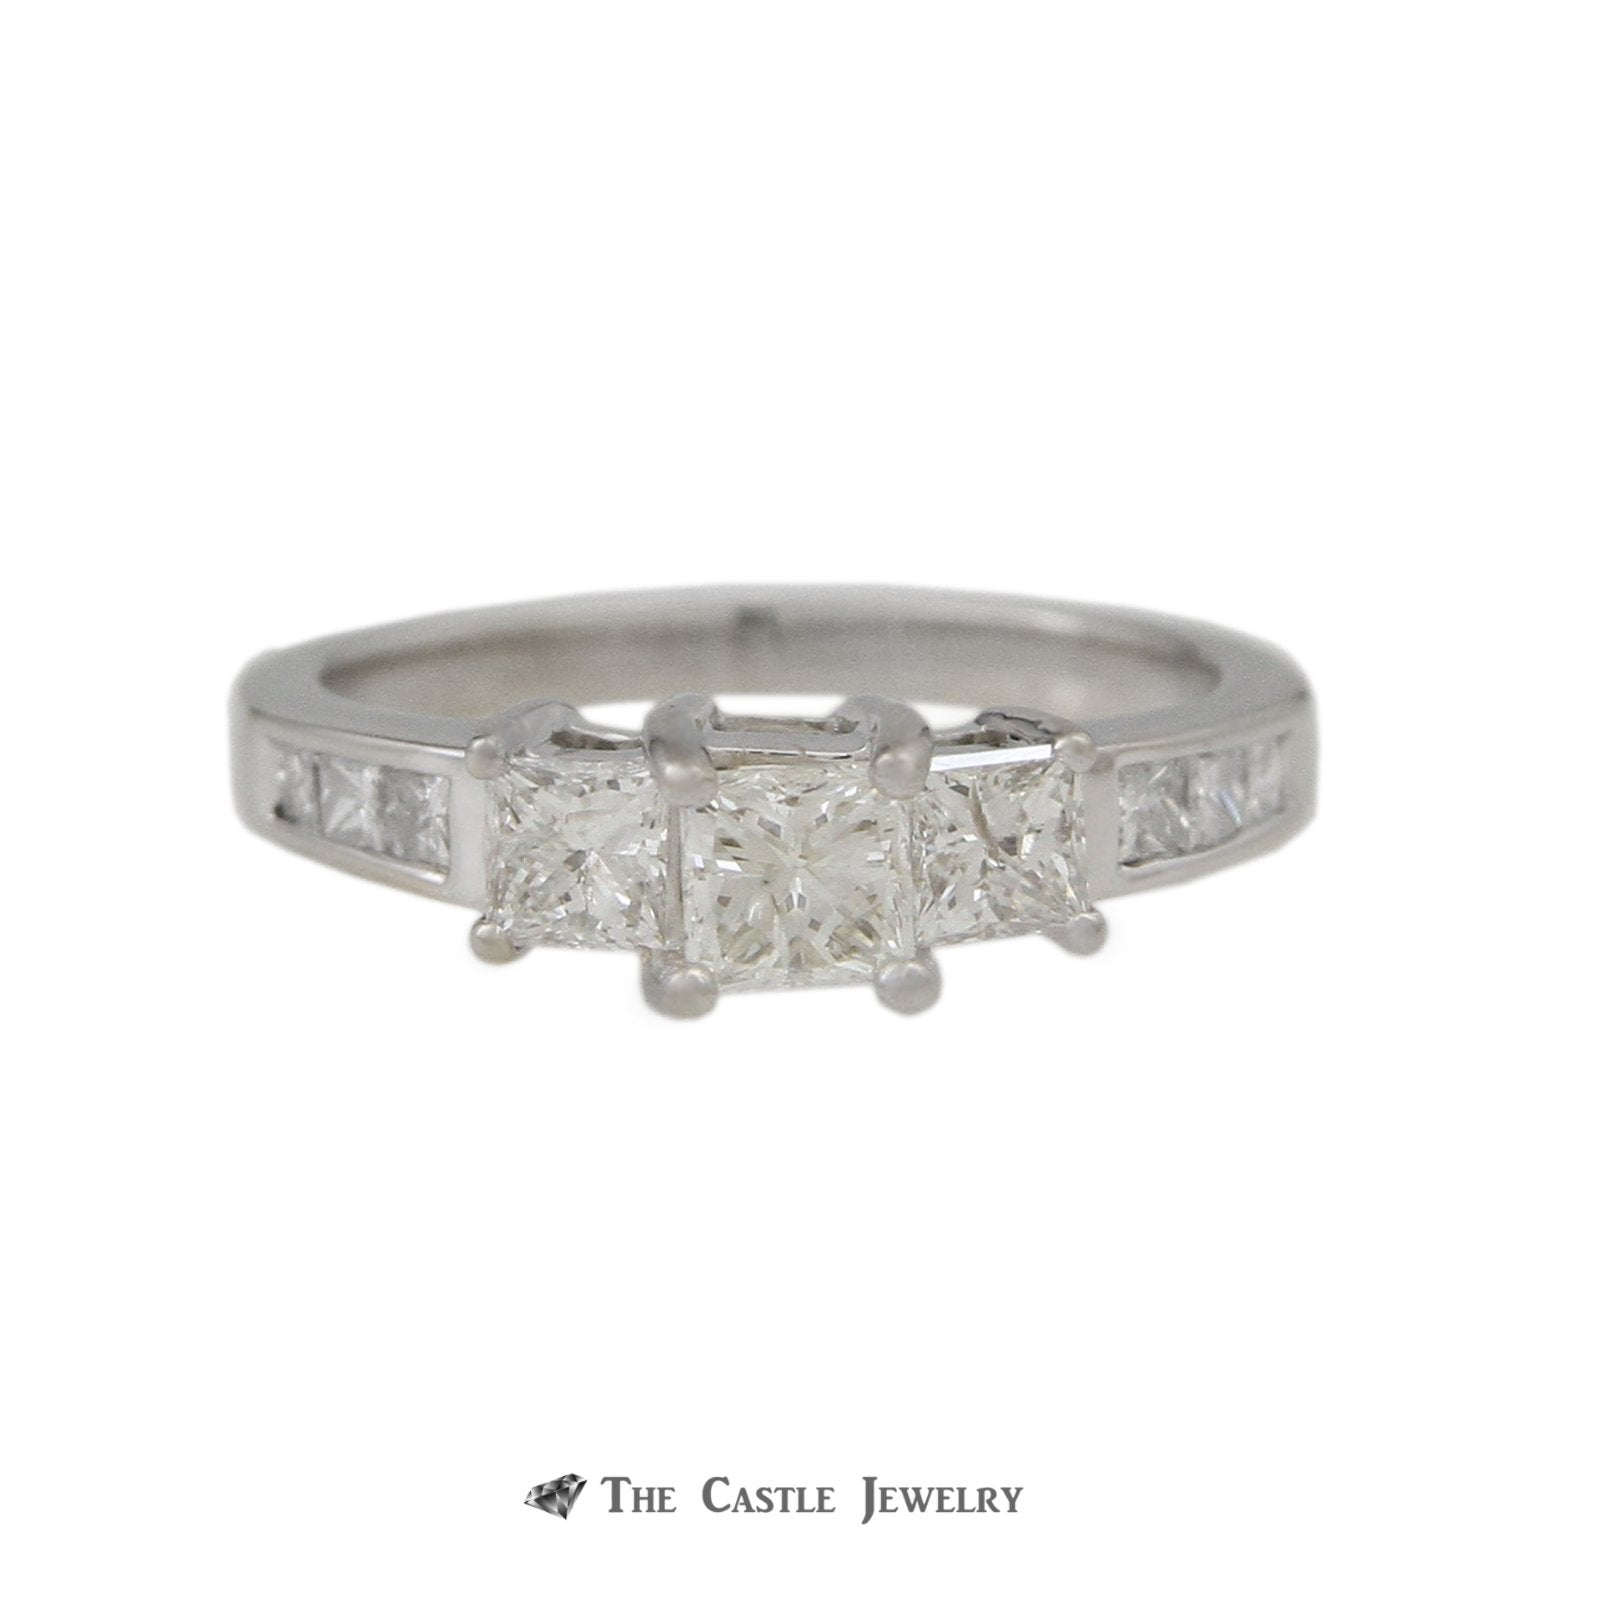 DeBeers Style Ring with 1cttw Princess Cut Channel Set Diamonds